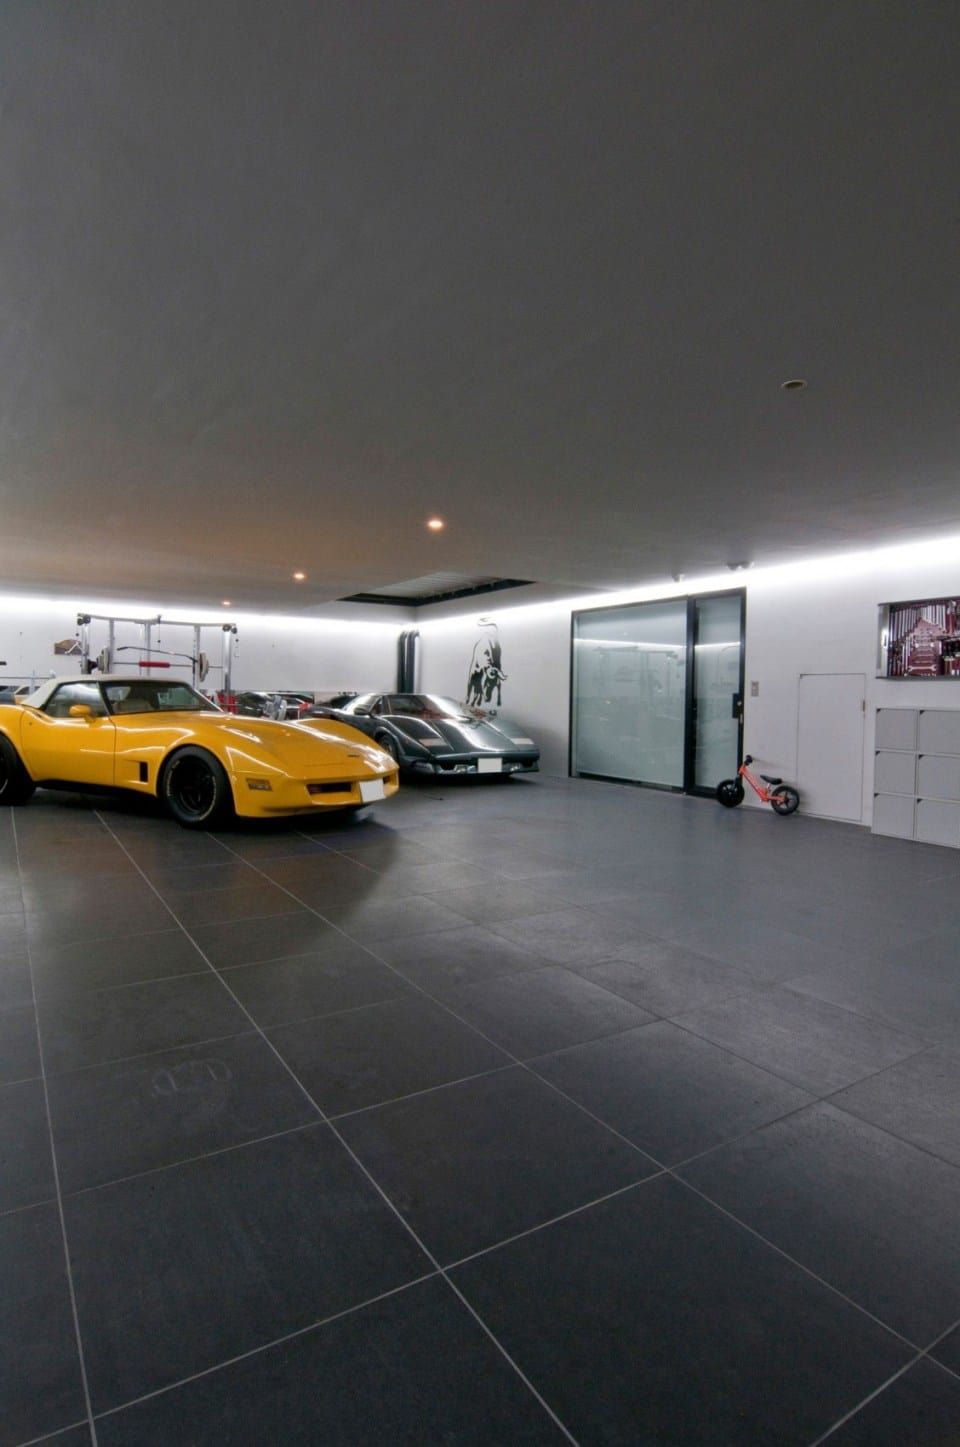 Minimalist Japanese House With An Awesome Car Elevator Garage Design Minimalist Japanese House Minimalist Japanese